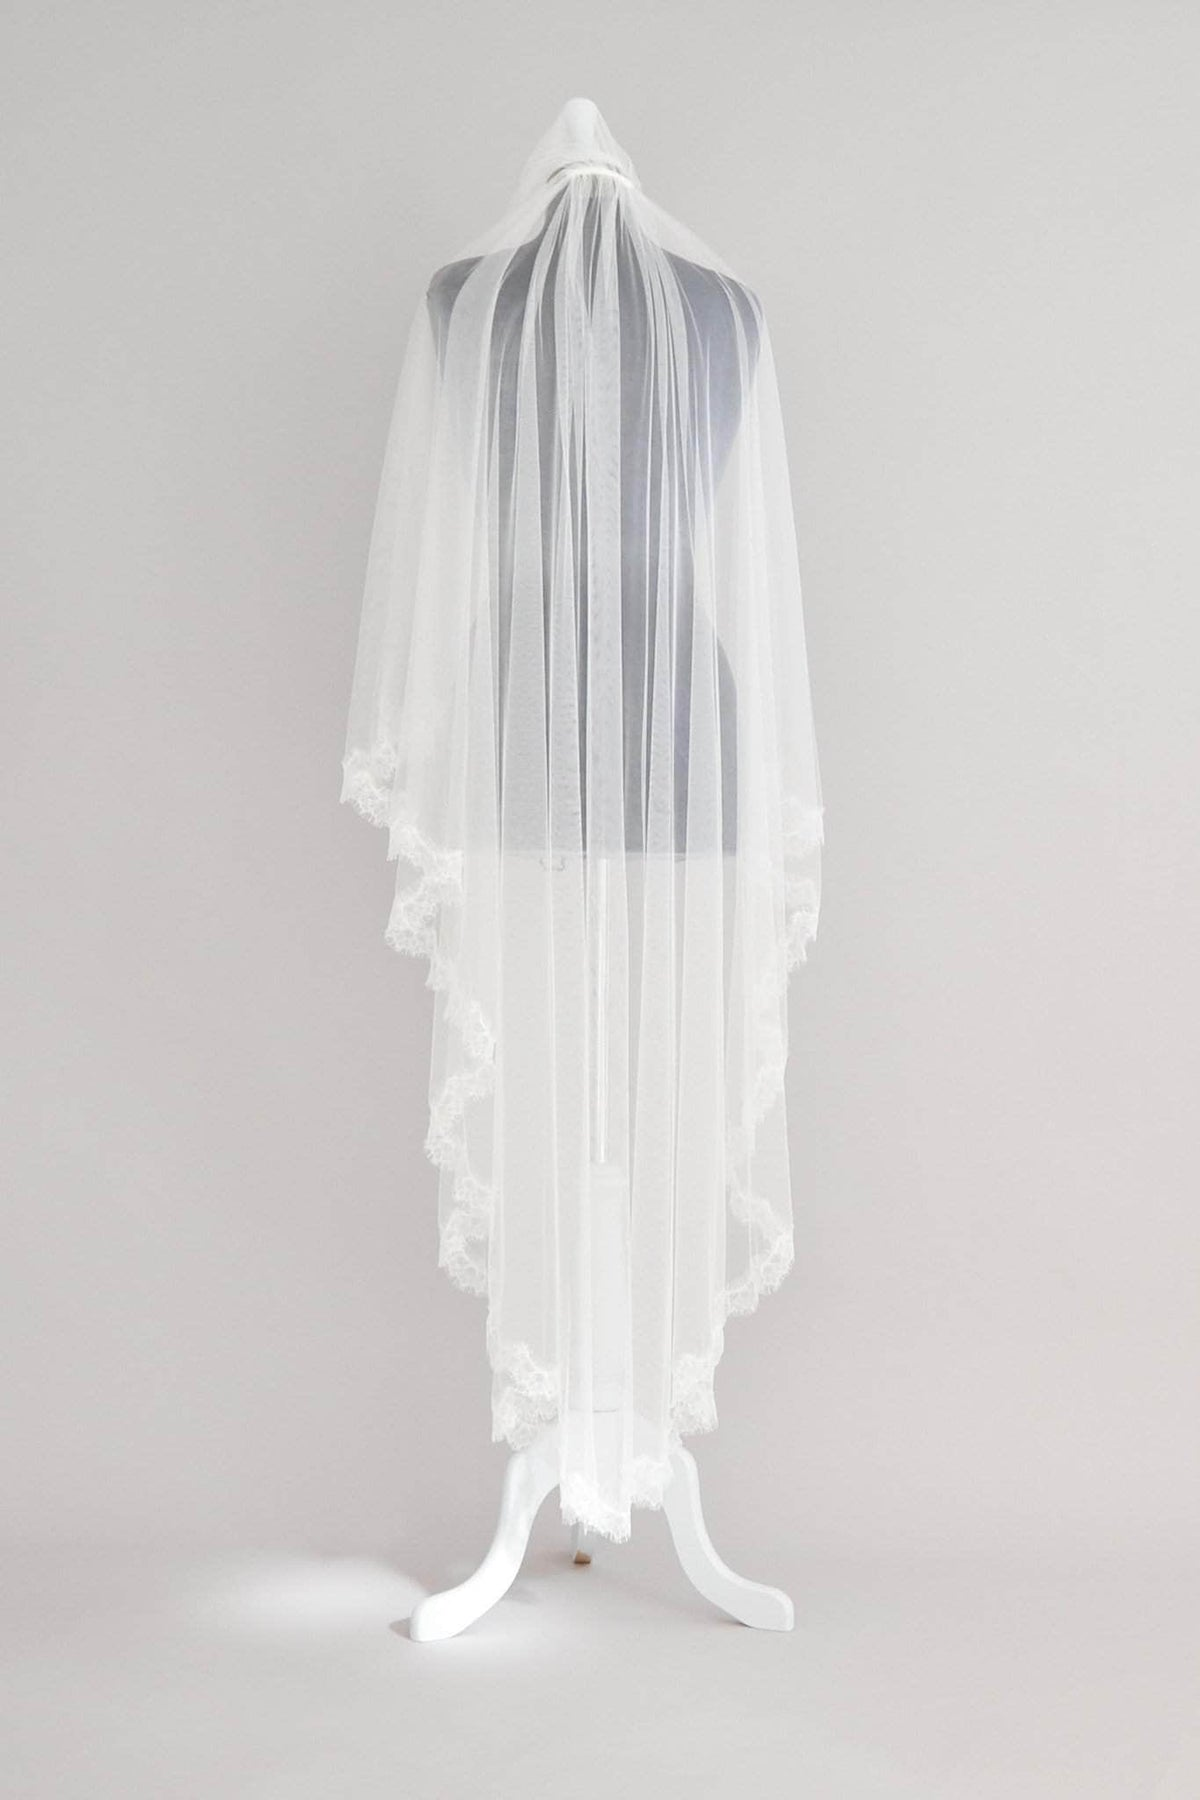 Wedding Veil Two Tier Silk Style Wedding Veil With French Eyelash Lace Trim- 'Mia'